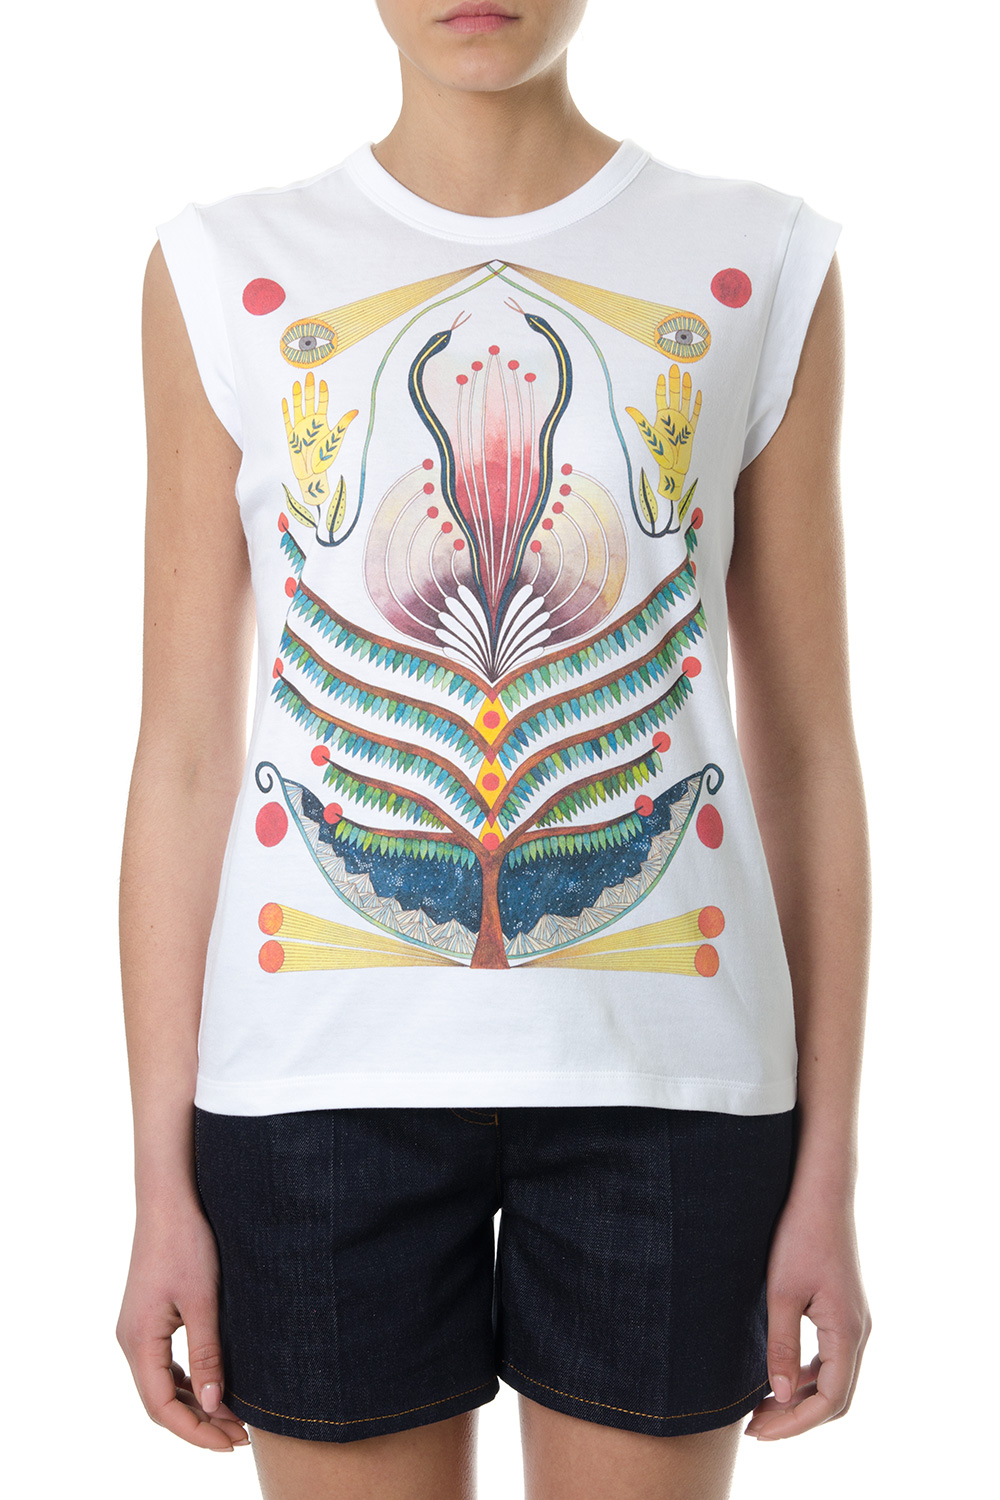 Store Cheap Price 2018 For Sale Printed cotton T-shirt Chlo Discount Extremely Clearance Footlocker Finishline Kz2ex